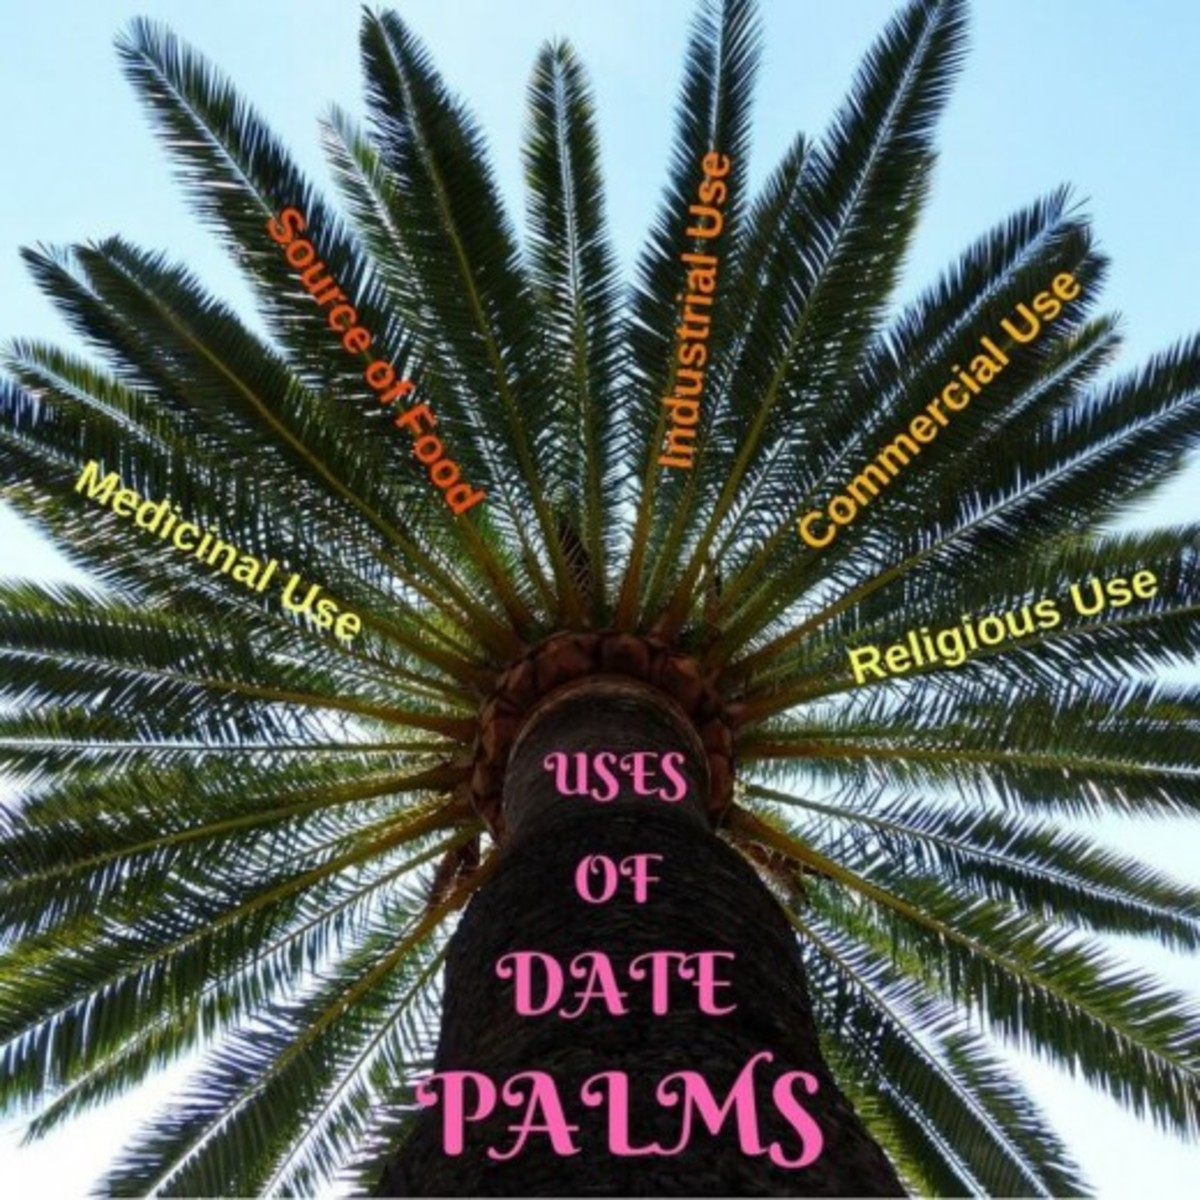 Benefits of date palm